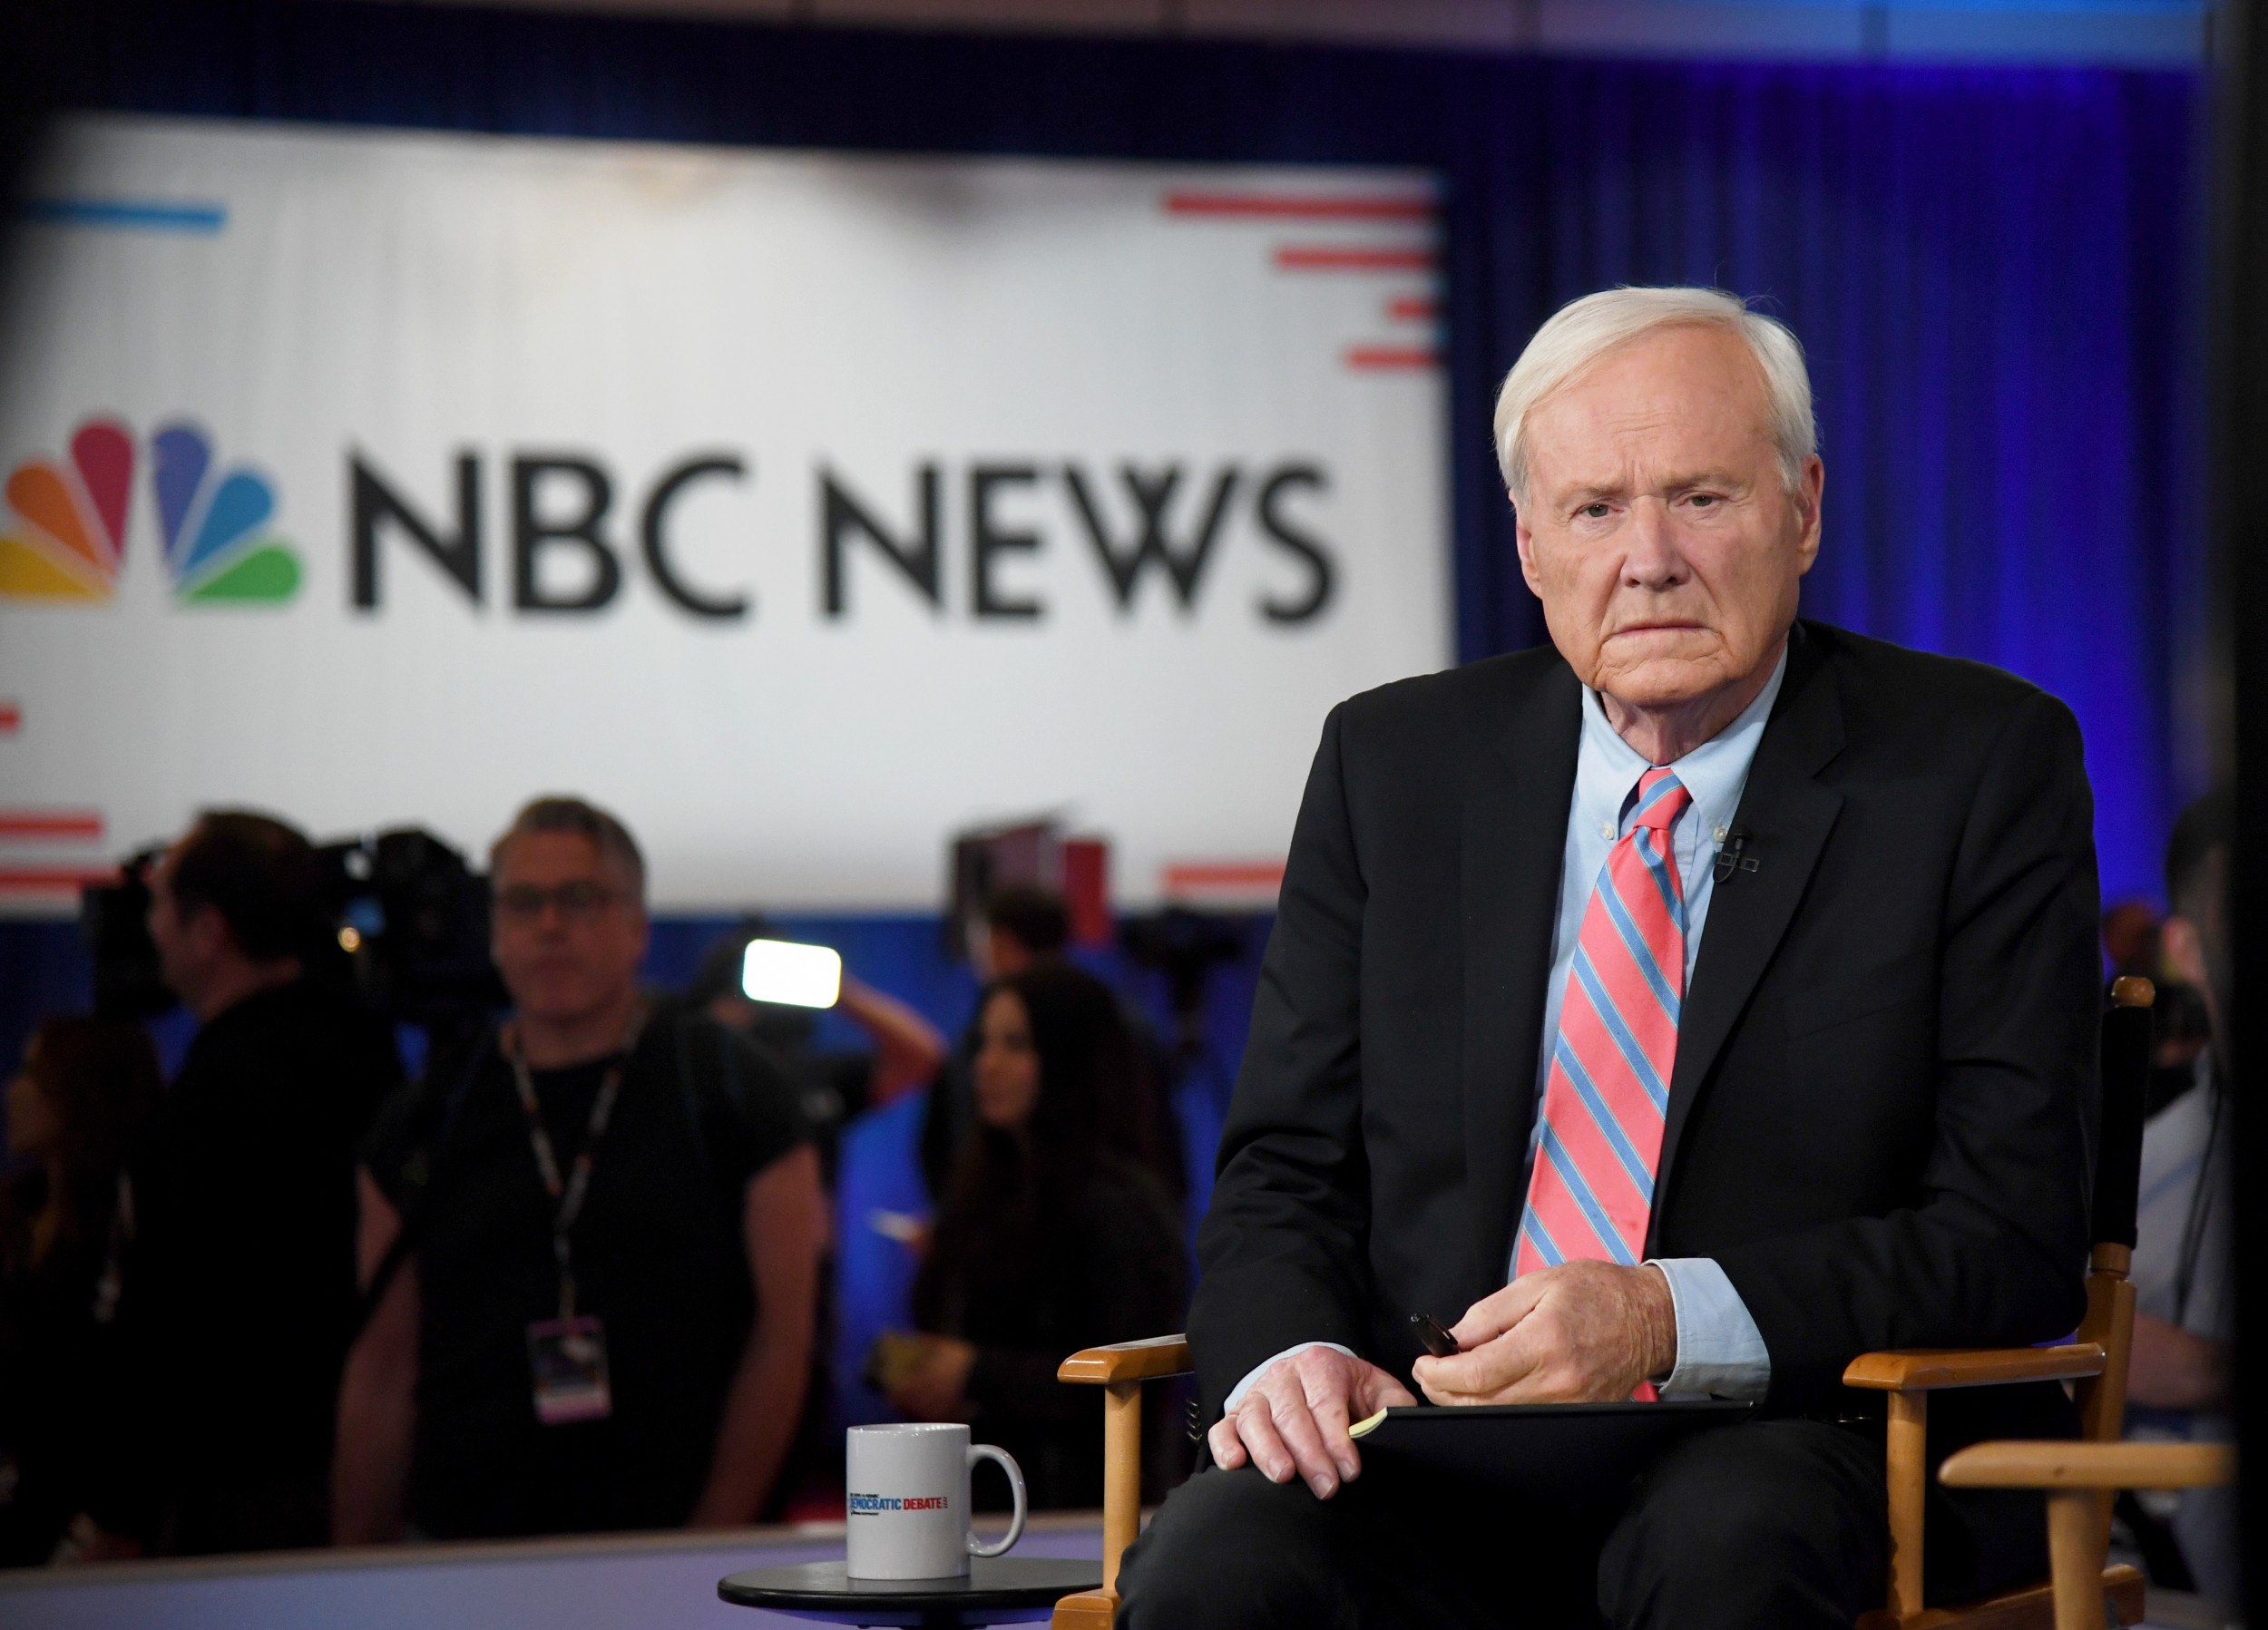 MSNBC's Chris Matthews faces calls to resign after comparing Sanders' Nevada victory to Nazi Germany's defeat of France